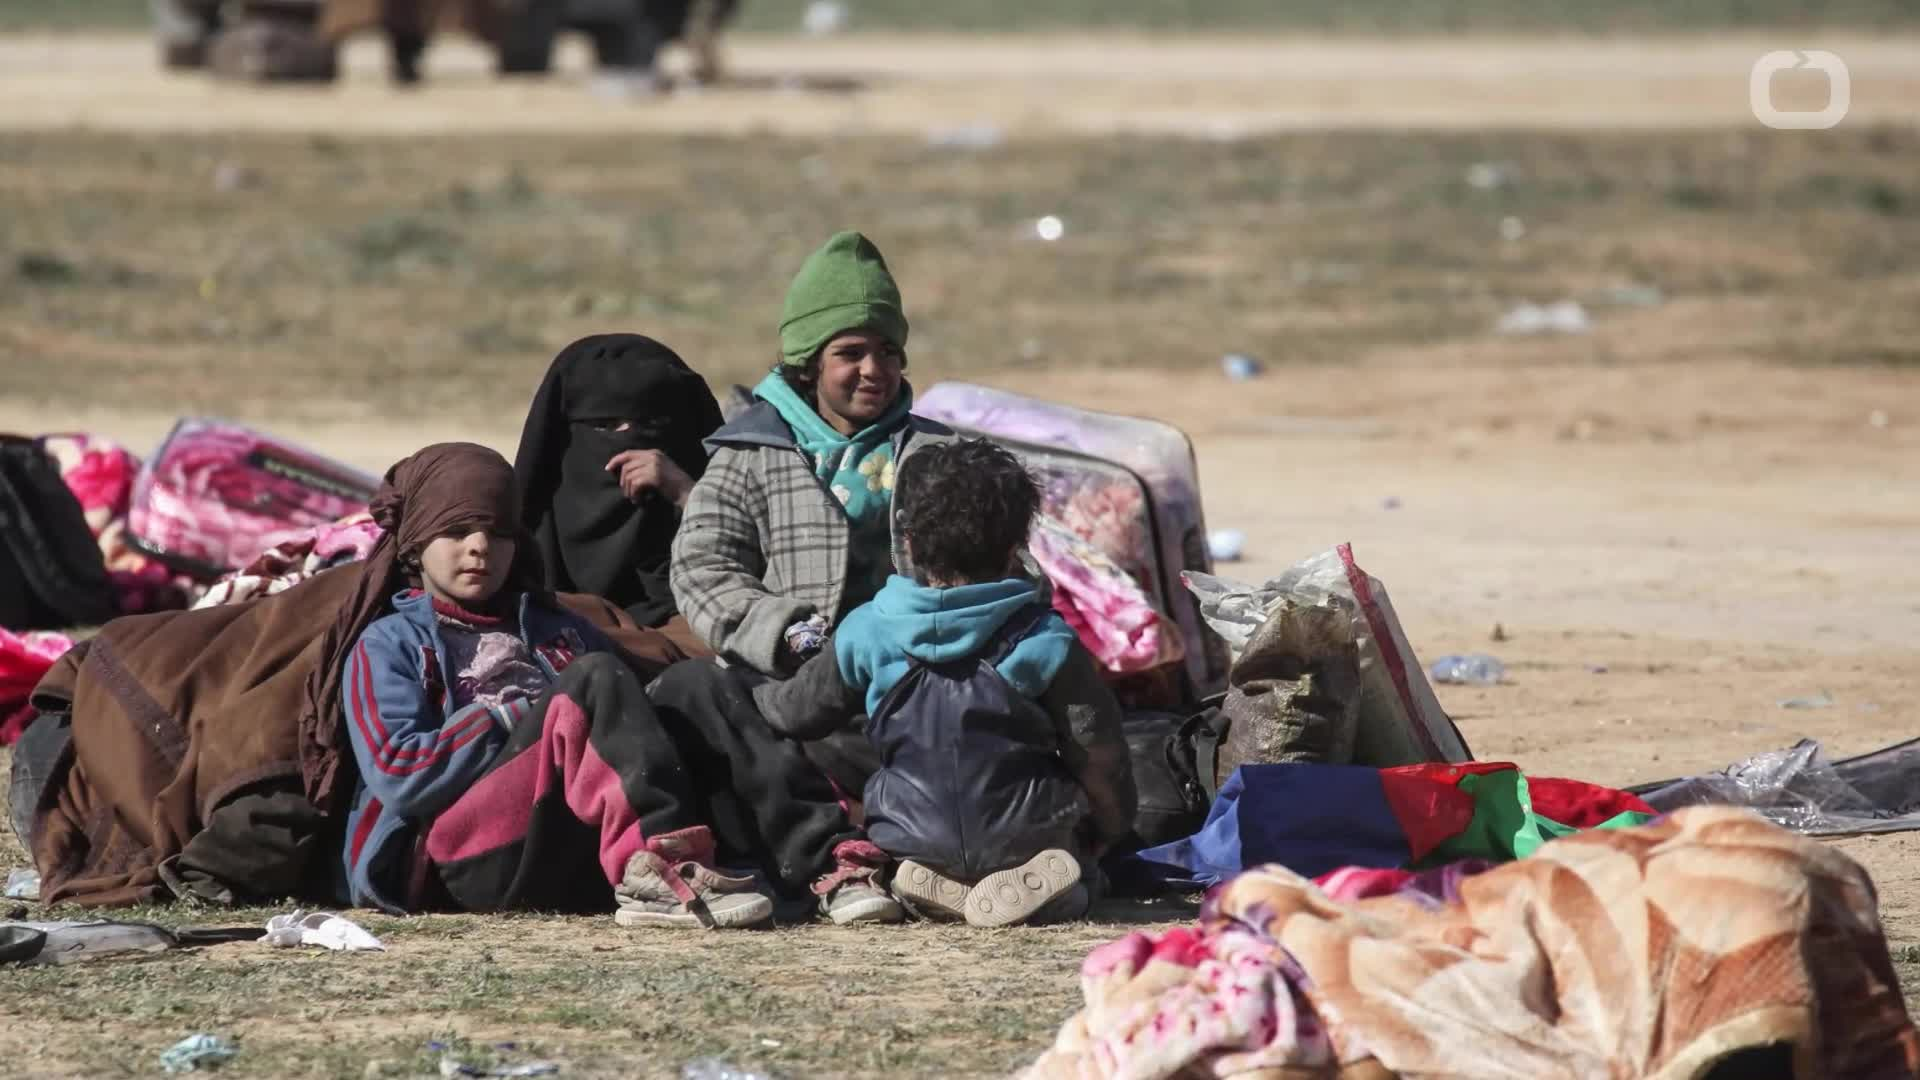 Sources Say Evacuation Of Last Civilians From Syrian Islamic State Enclave Underway